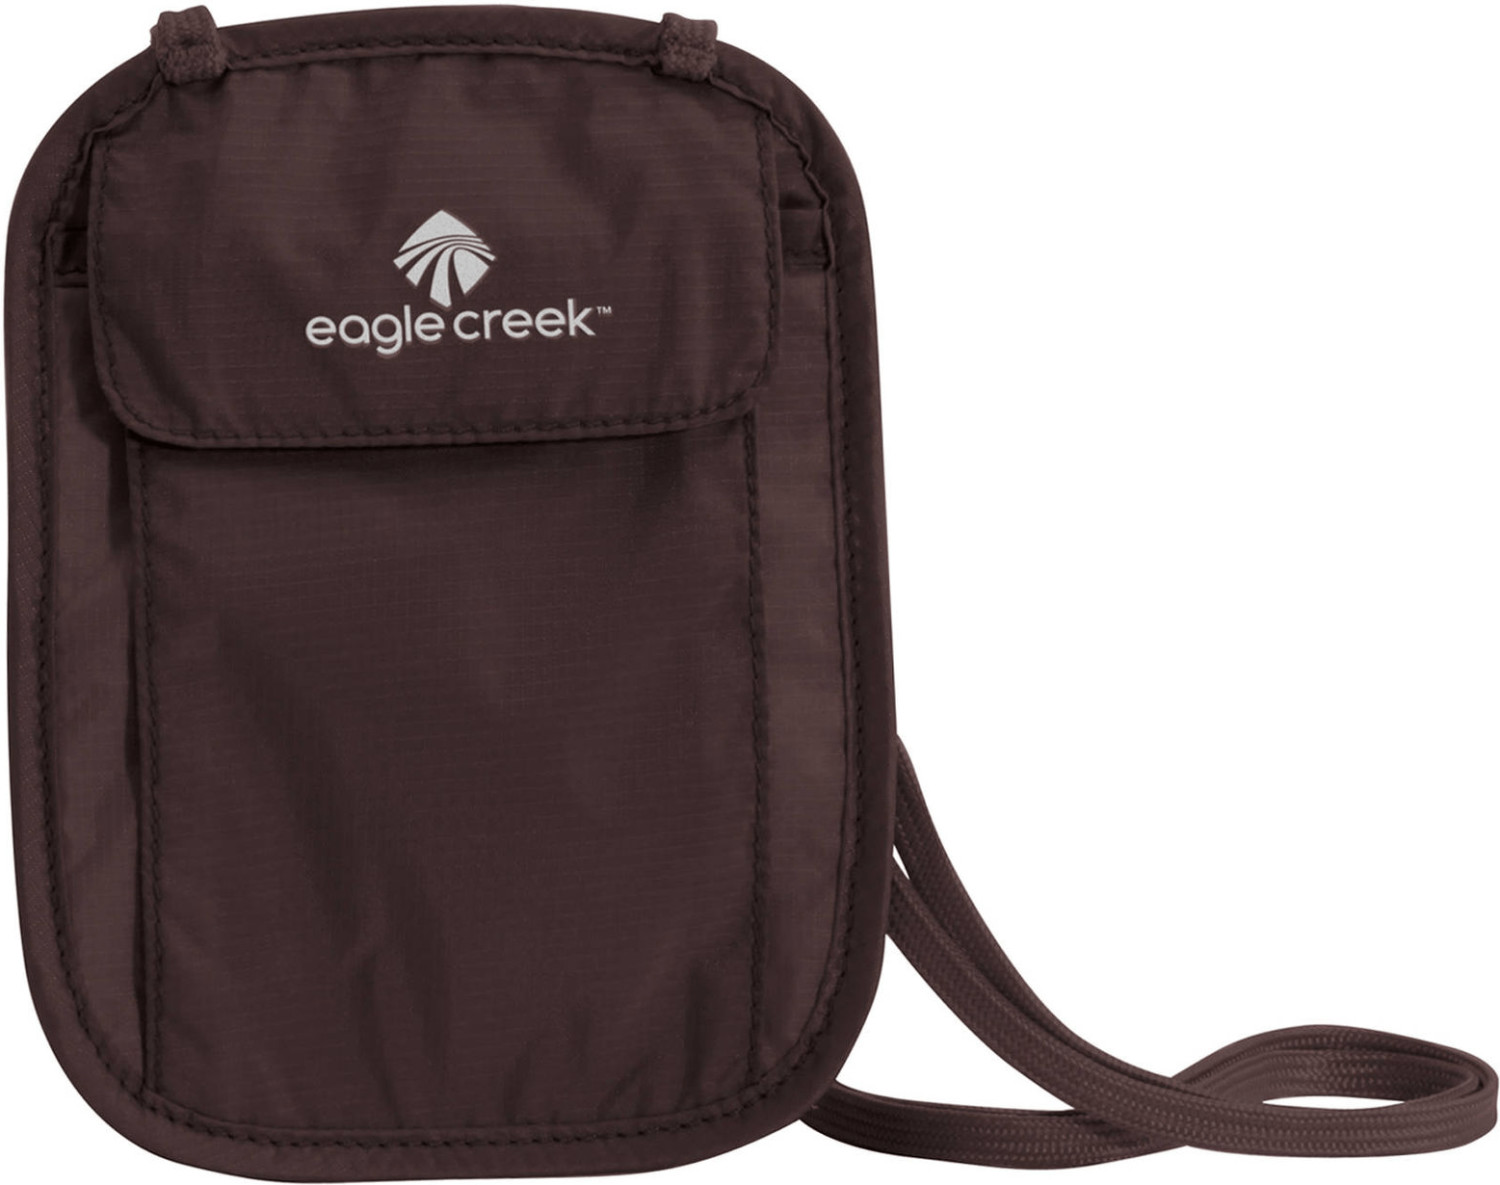 Eagle Creek Undercover Neck Wallet mocha (EC041127)